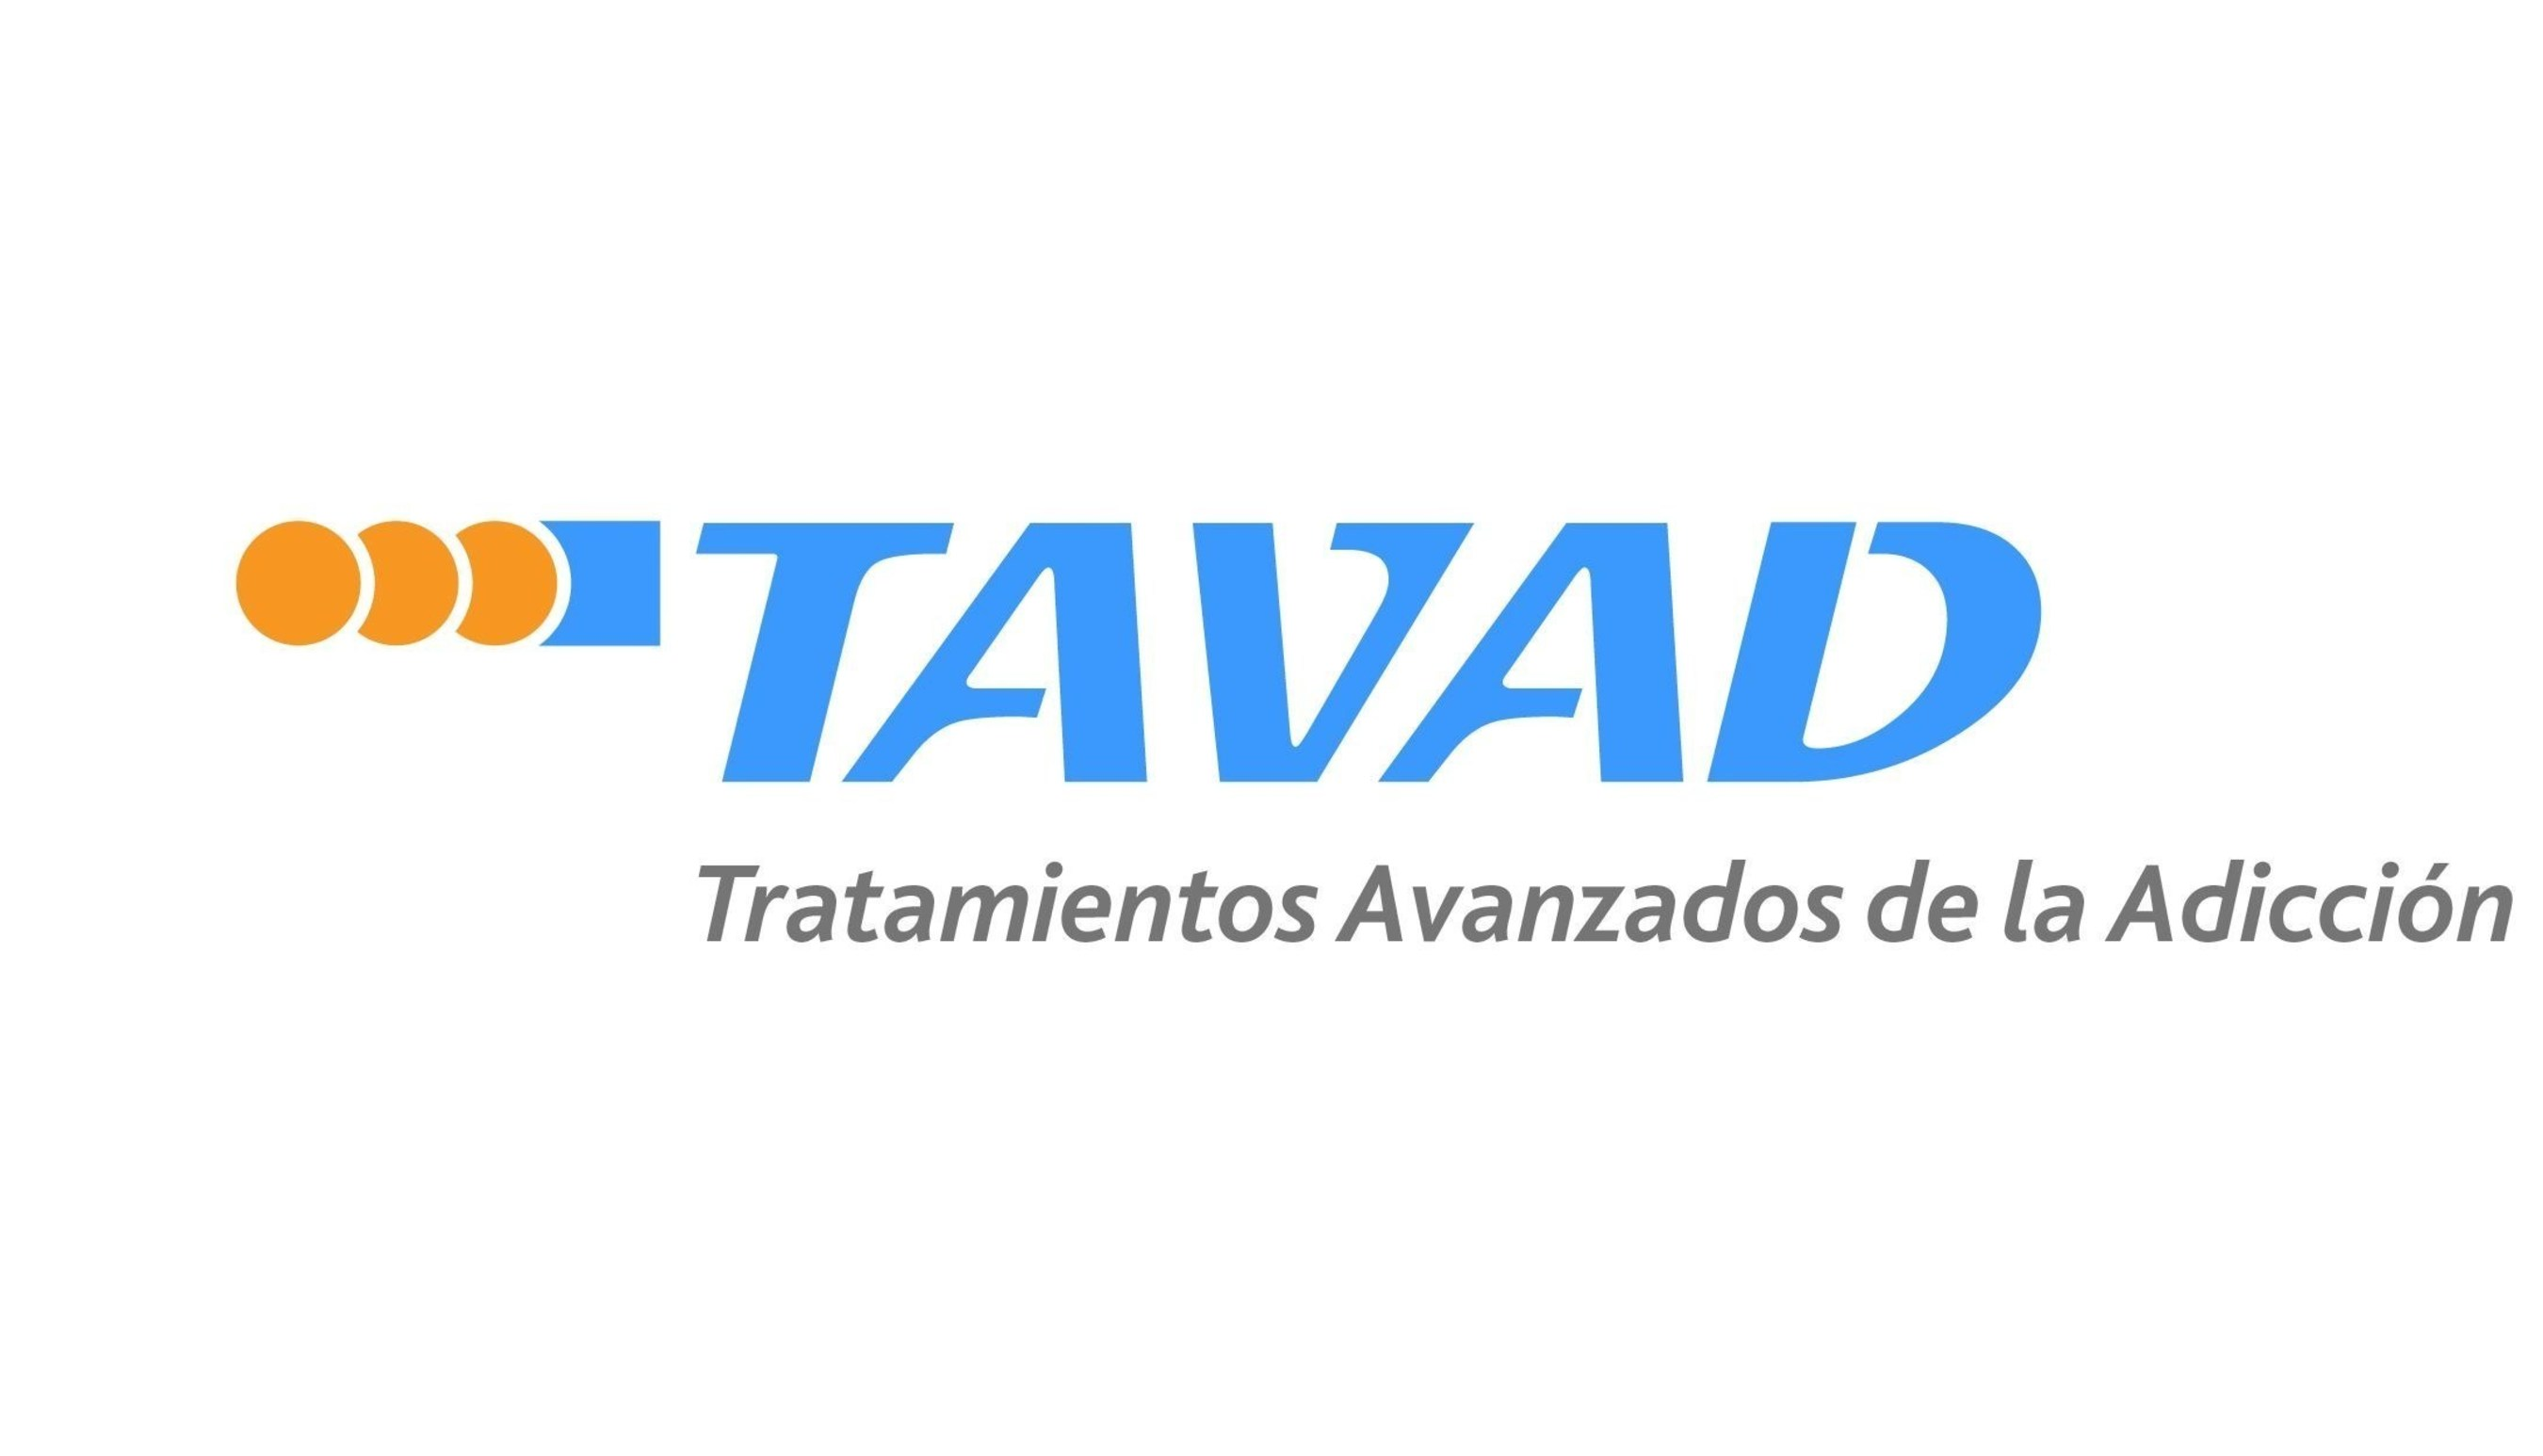 TAVAD - 87 per cent of patients successfully complete cocaine addiction treatment